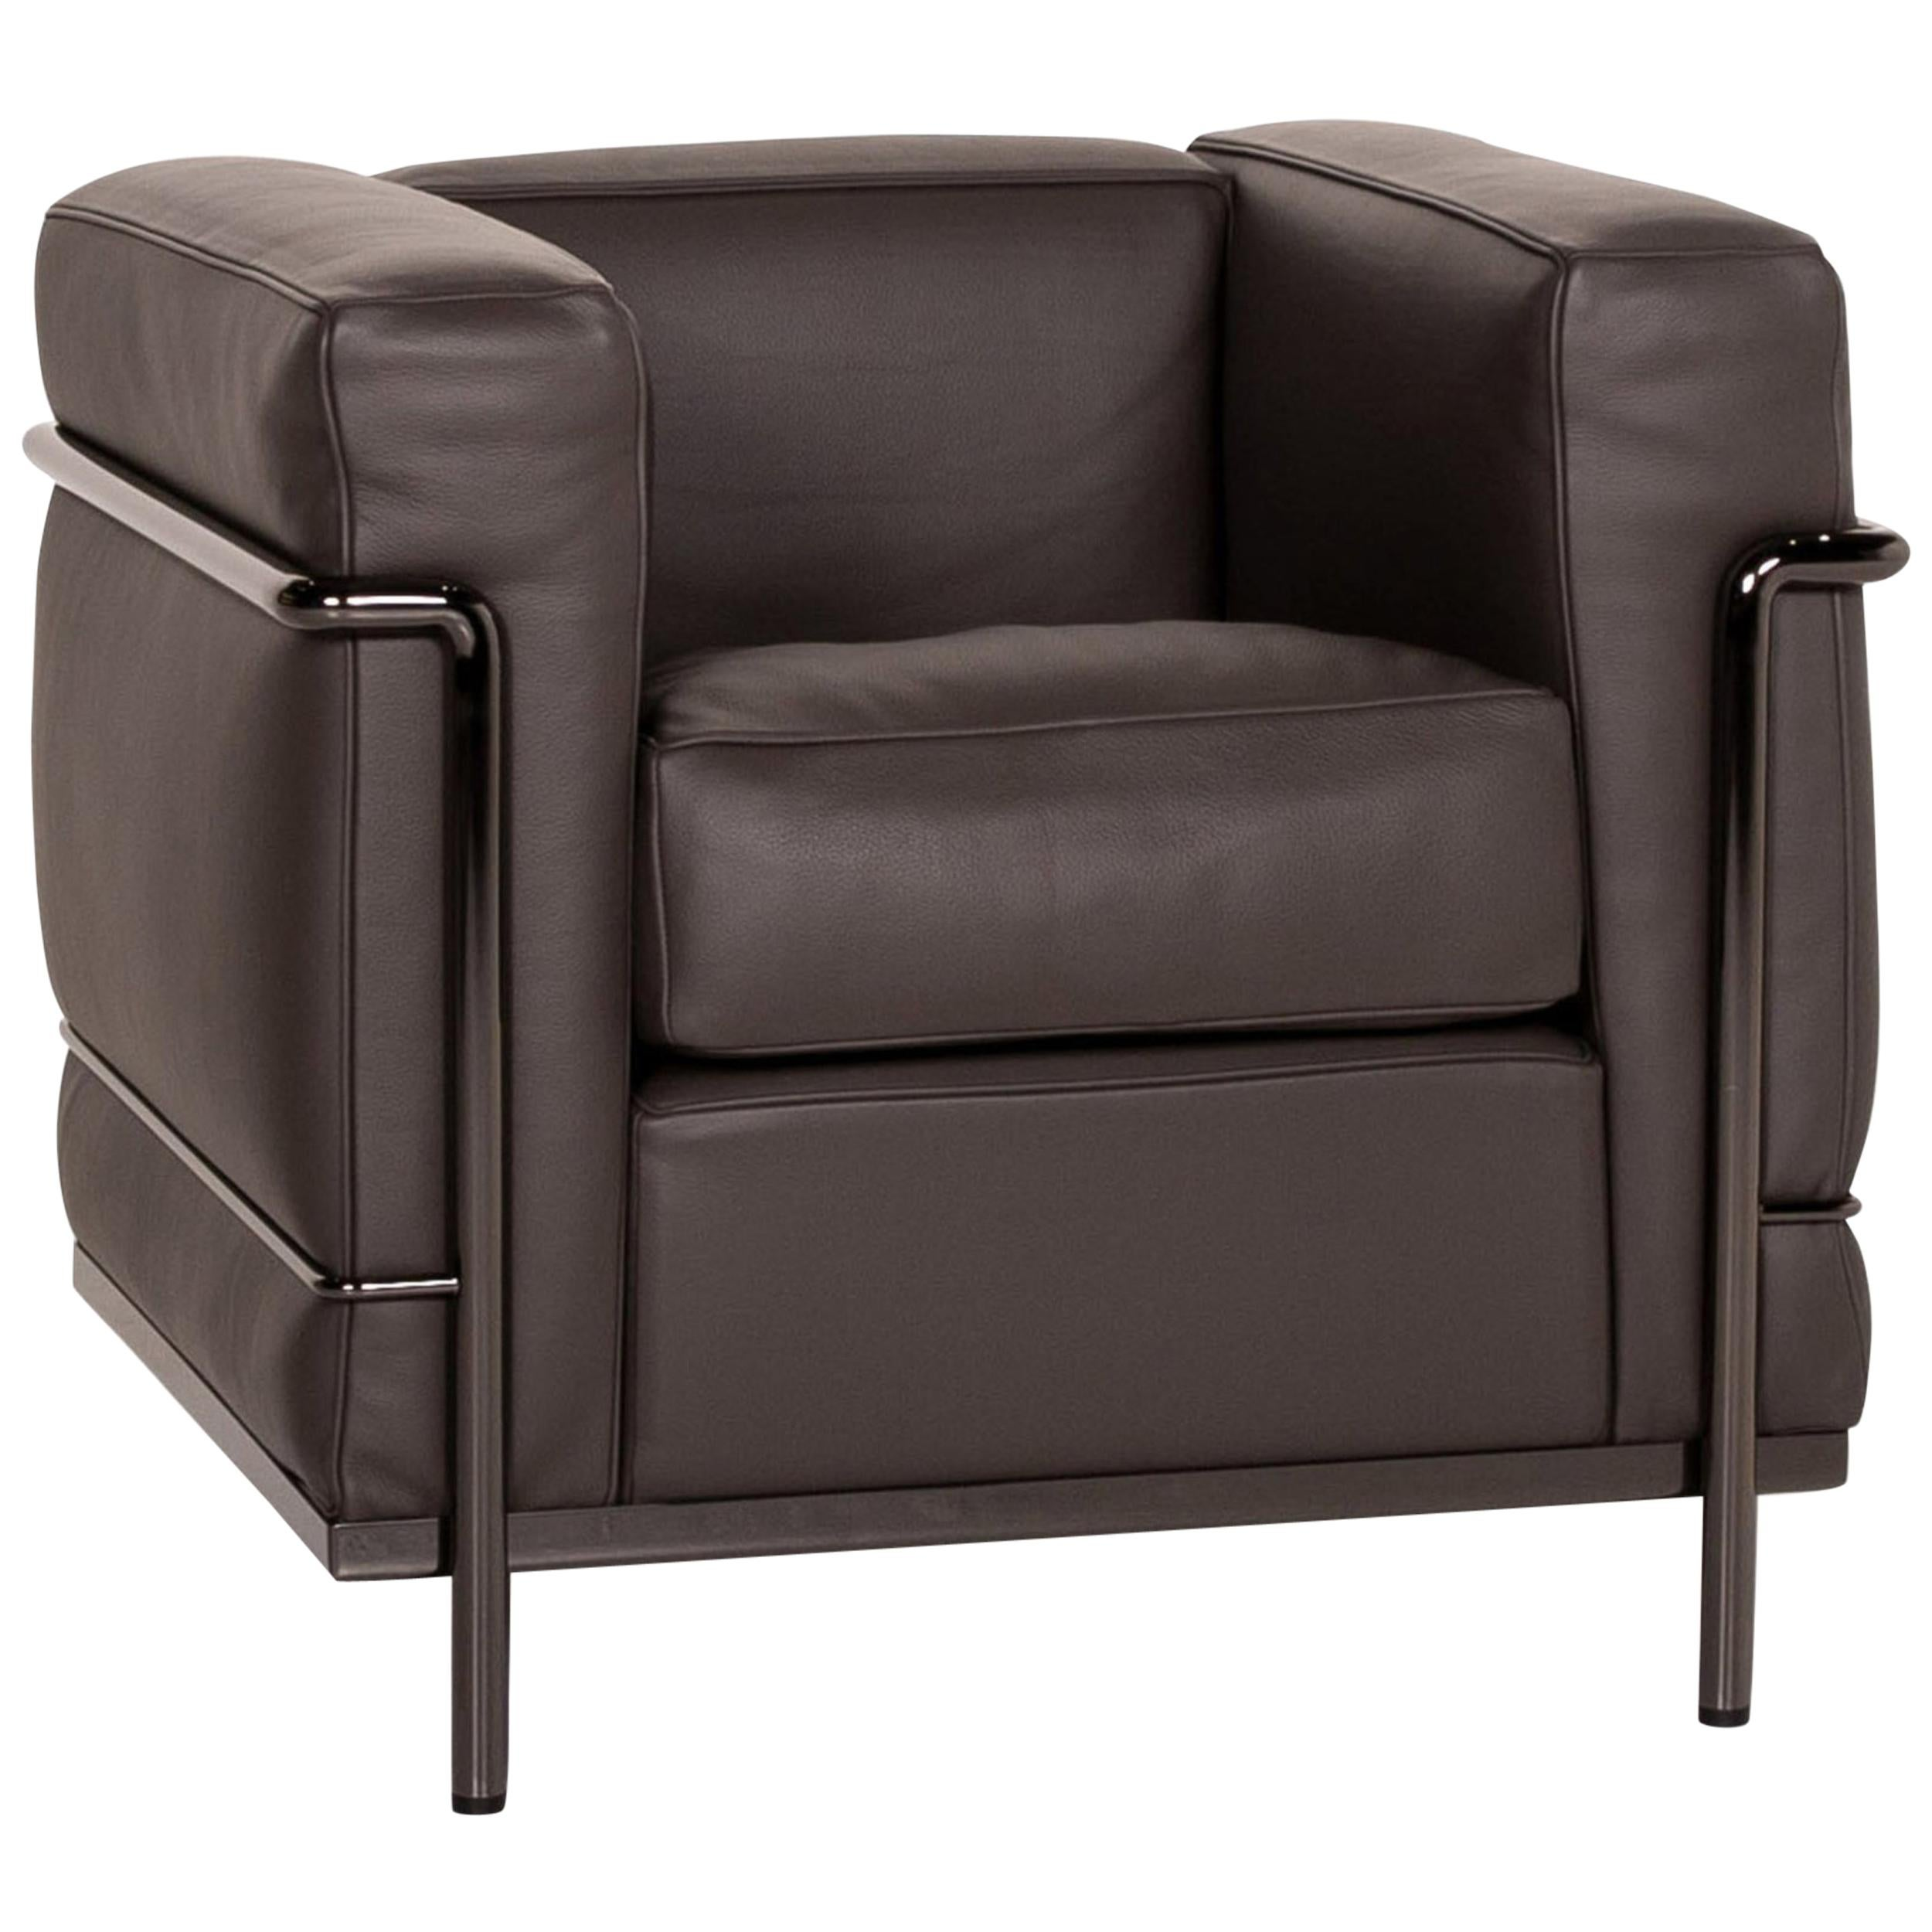 Cassina Le Corbusier LC 2 Leather Armchair Gray Brown Brown